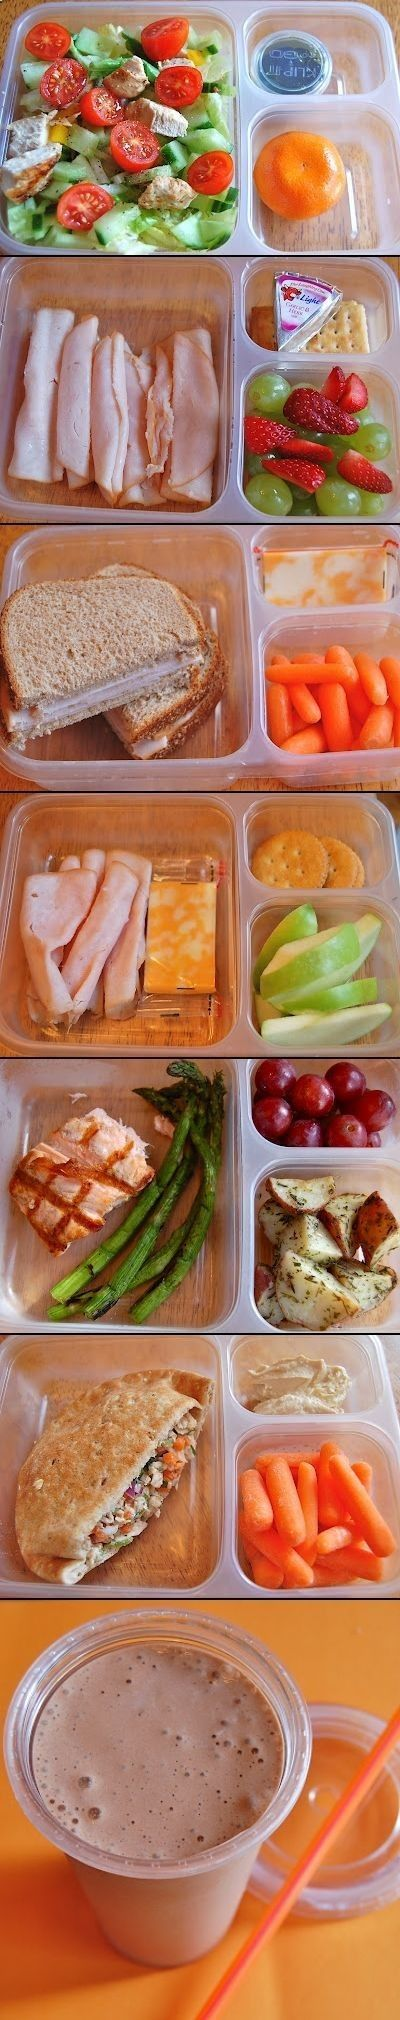 Healthy Lunch Ideas // make a bunch and stack in fridge for work, school, etc.